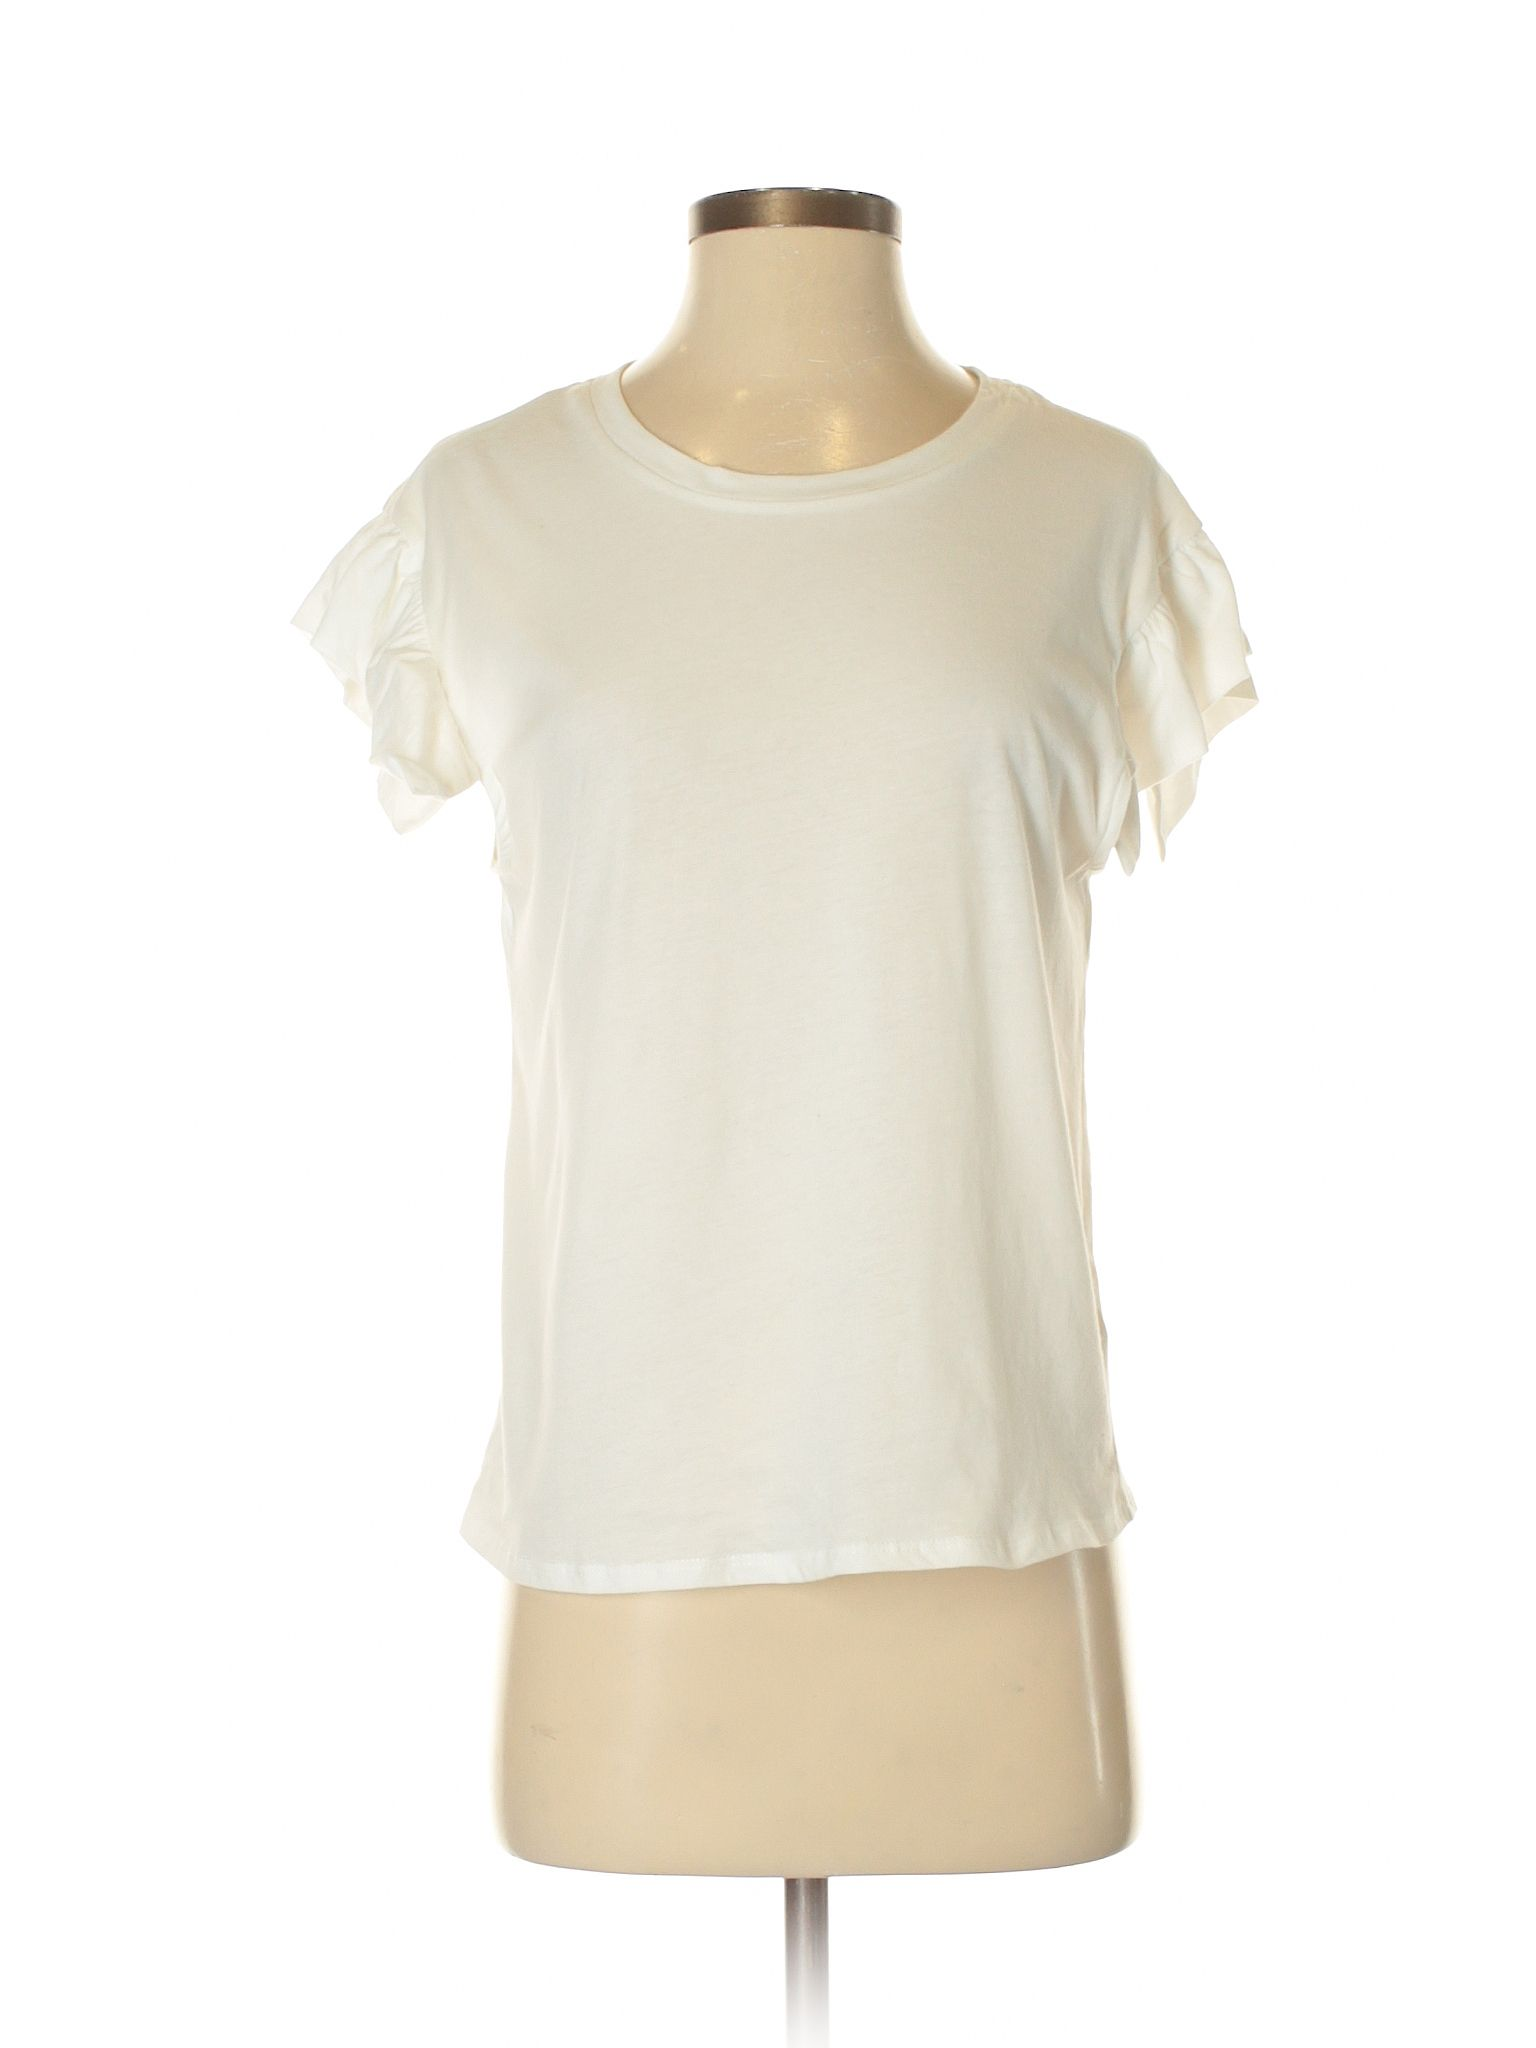 6d6bebcb4 Nectar Short Sleeve Top: Size 4.00 Ivory Women's Tops - $8.99